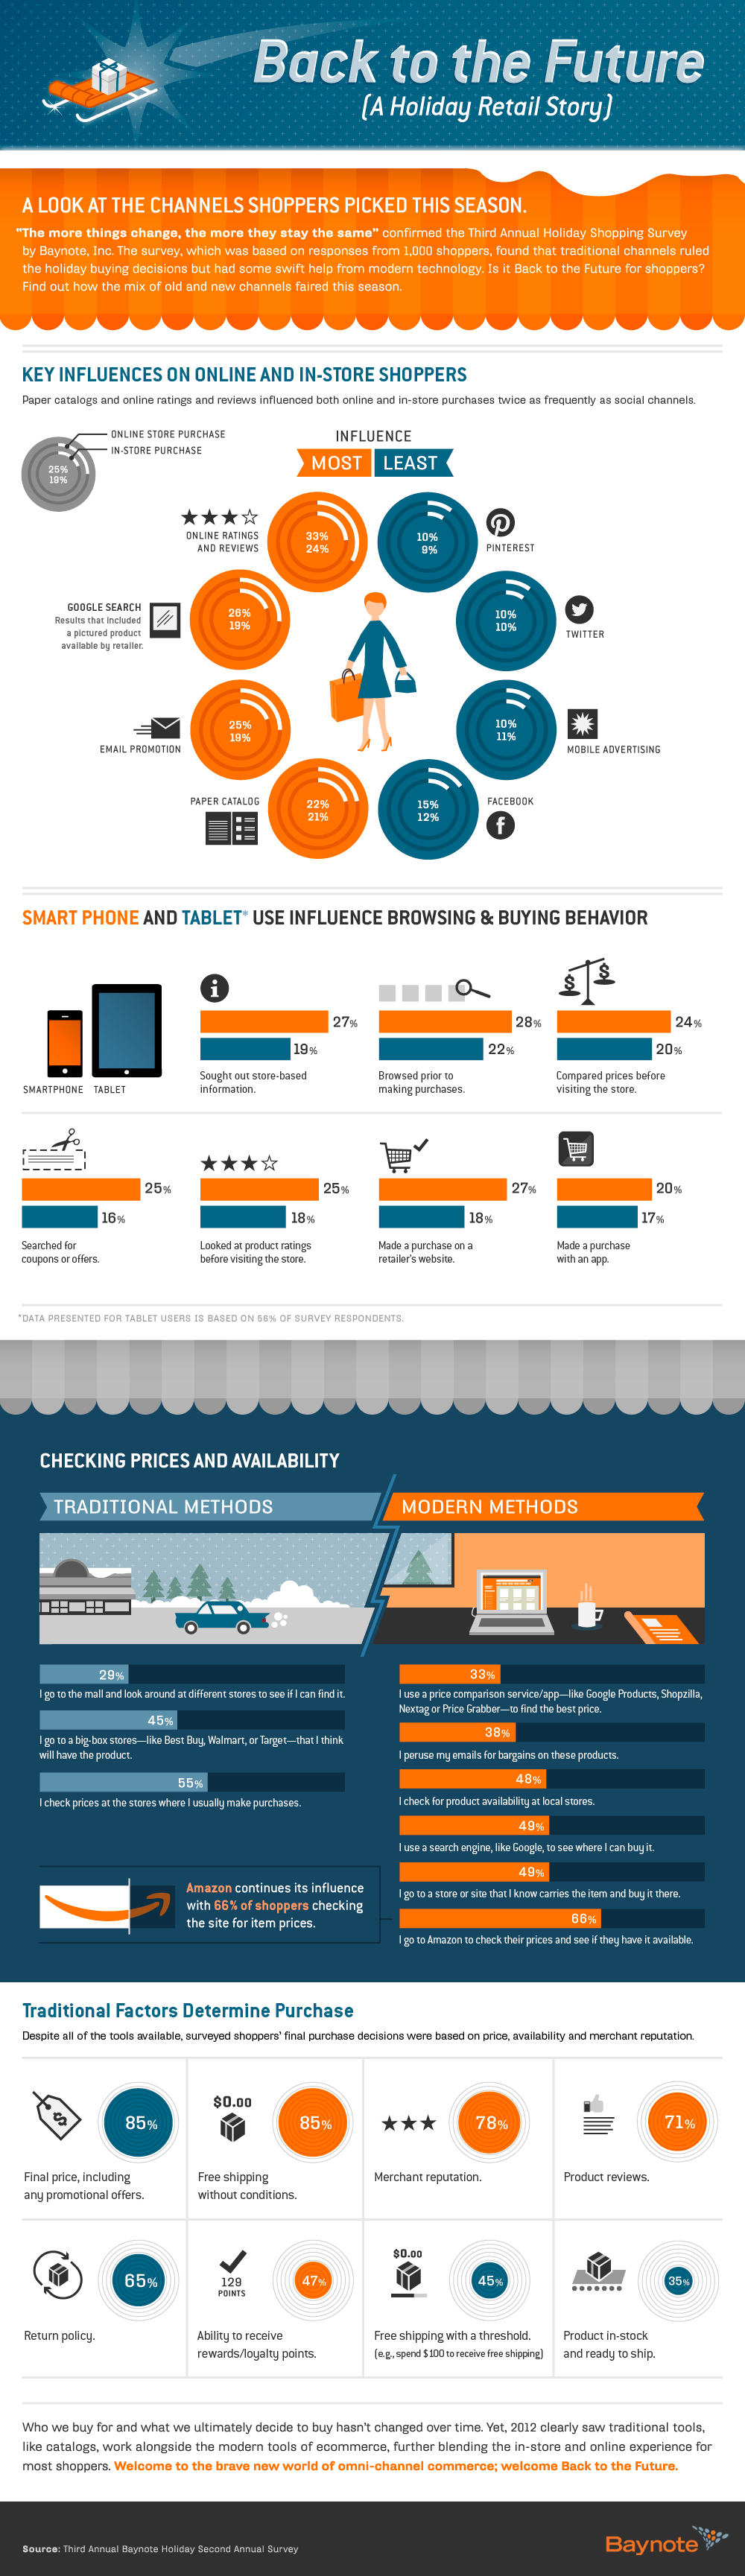 Infographic Back to the Future